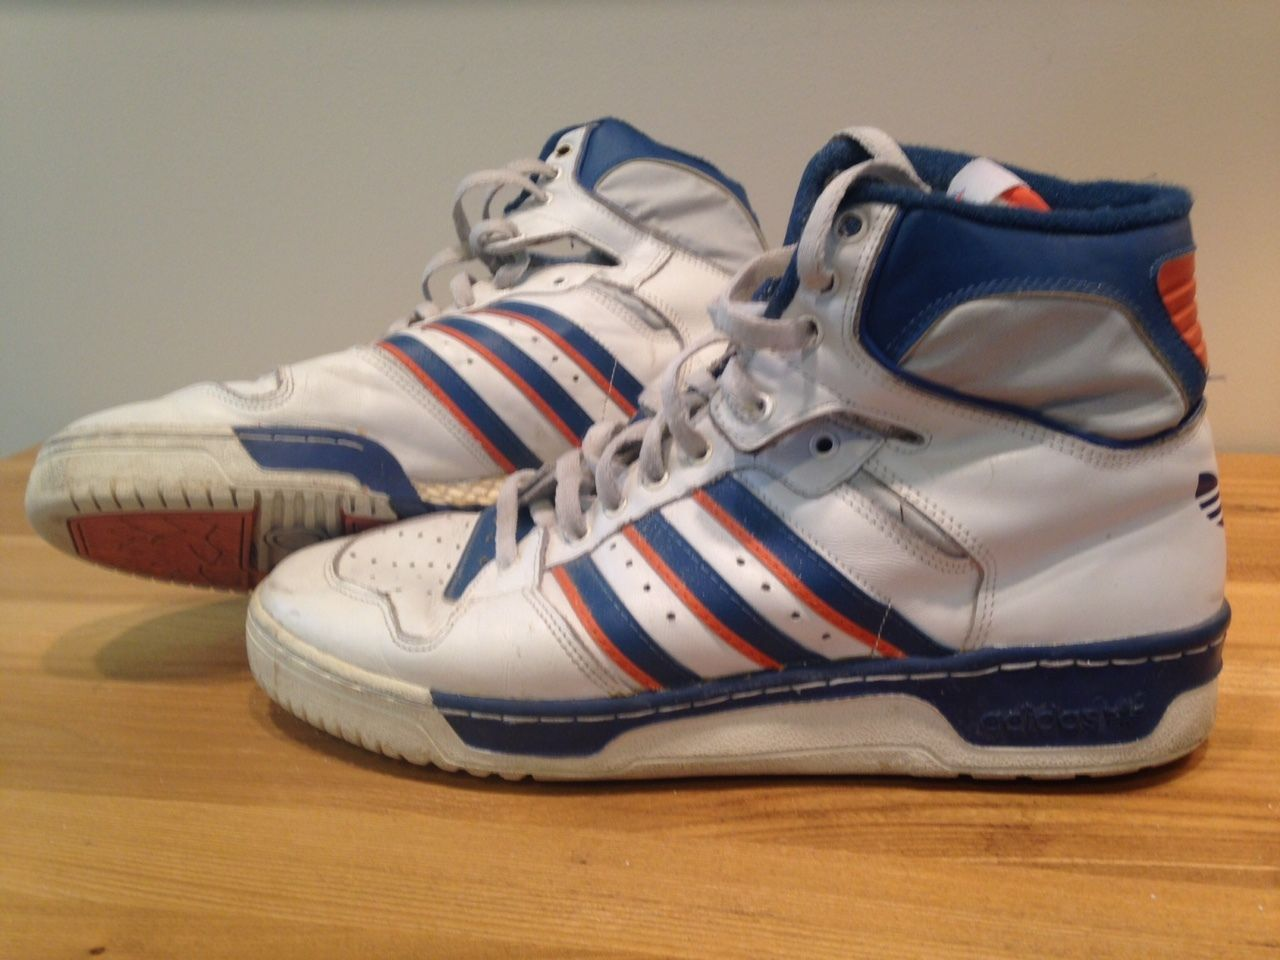 adidas Basketball Shoes for Men | eBay